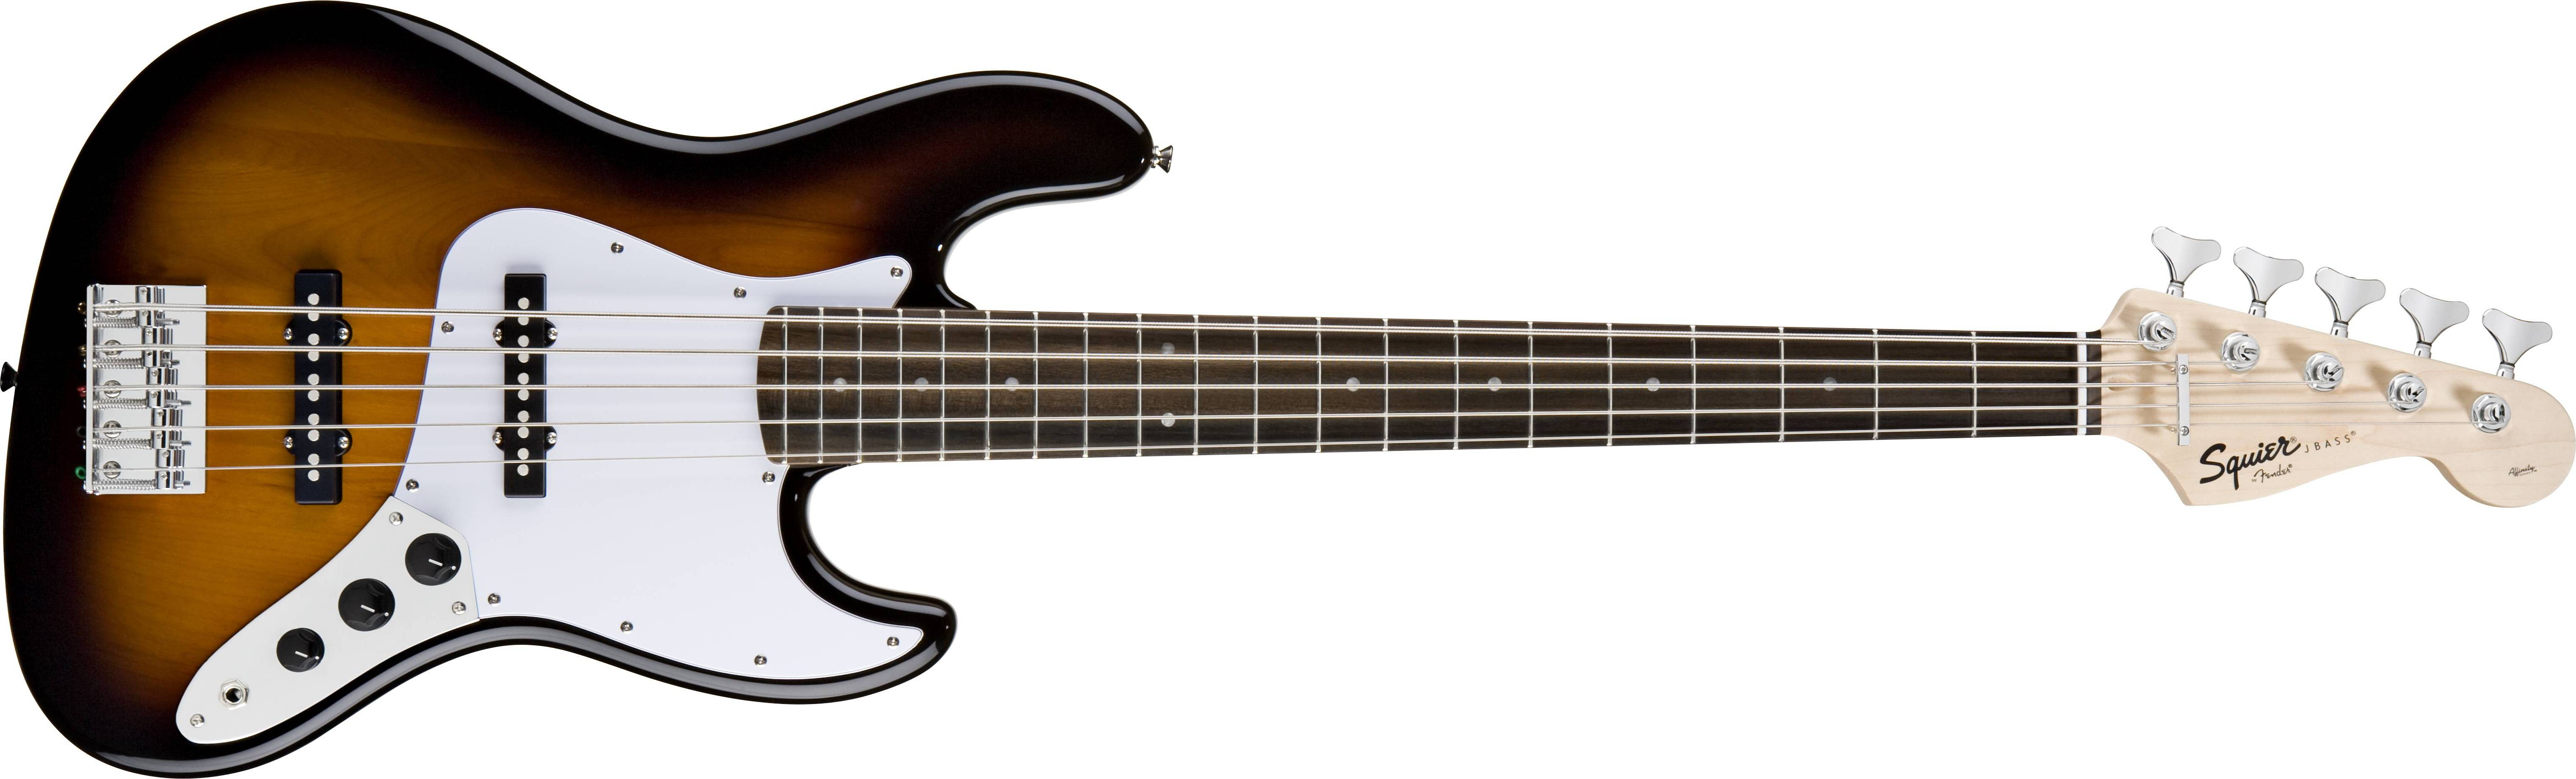 My eb bass squier vintage modified jazz bass - Squier Affinity 5 String Jazz Bass V Brown Sunburst Long Mcquade Musical Instruments